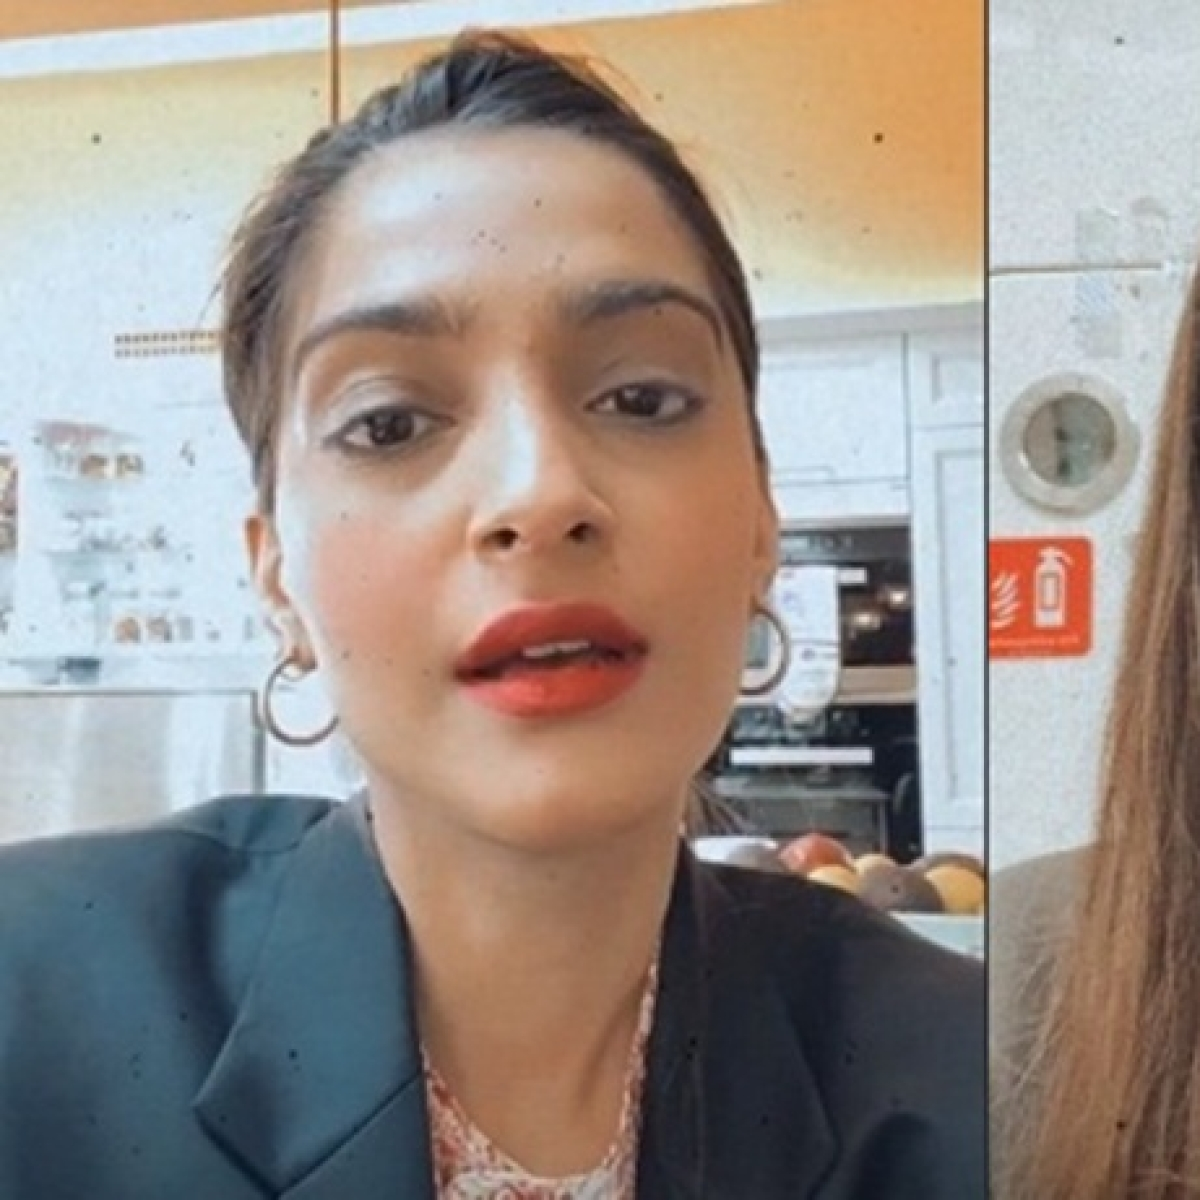 'Govt is doing best it can': Sonam Kapoor hails 'incredible' effort to tackle coronavirus